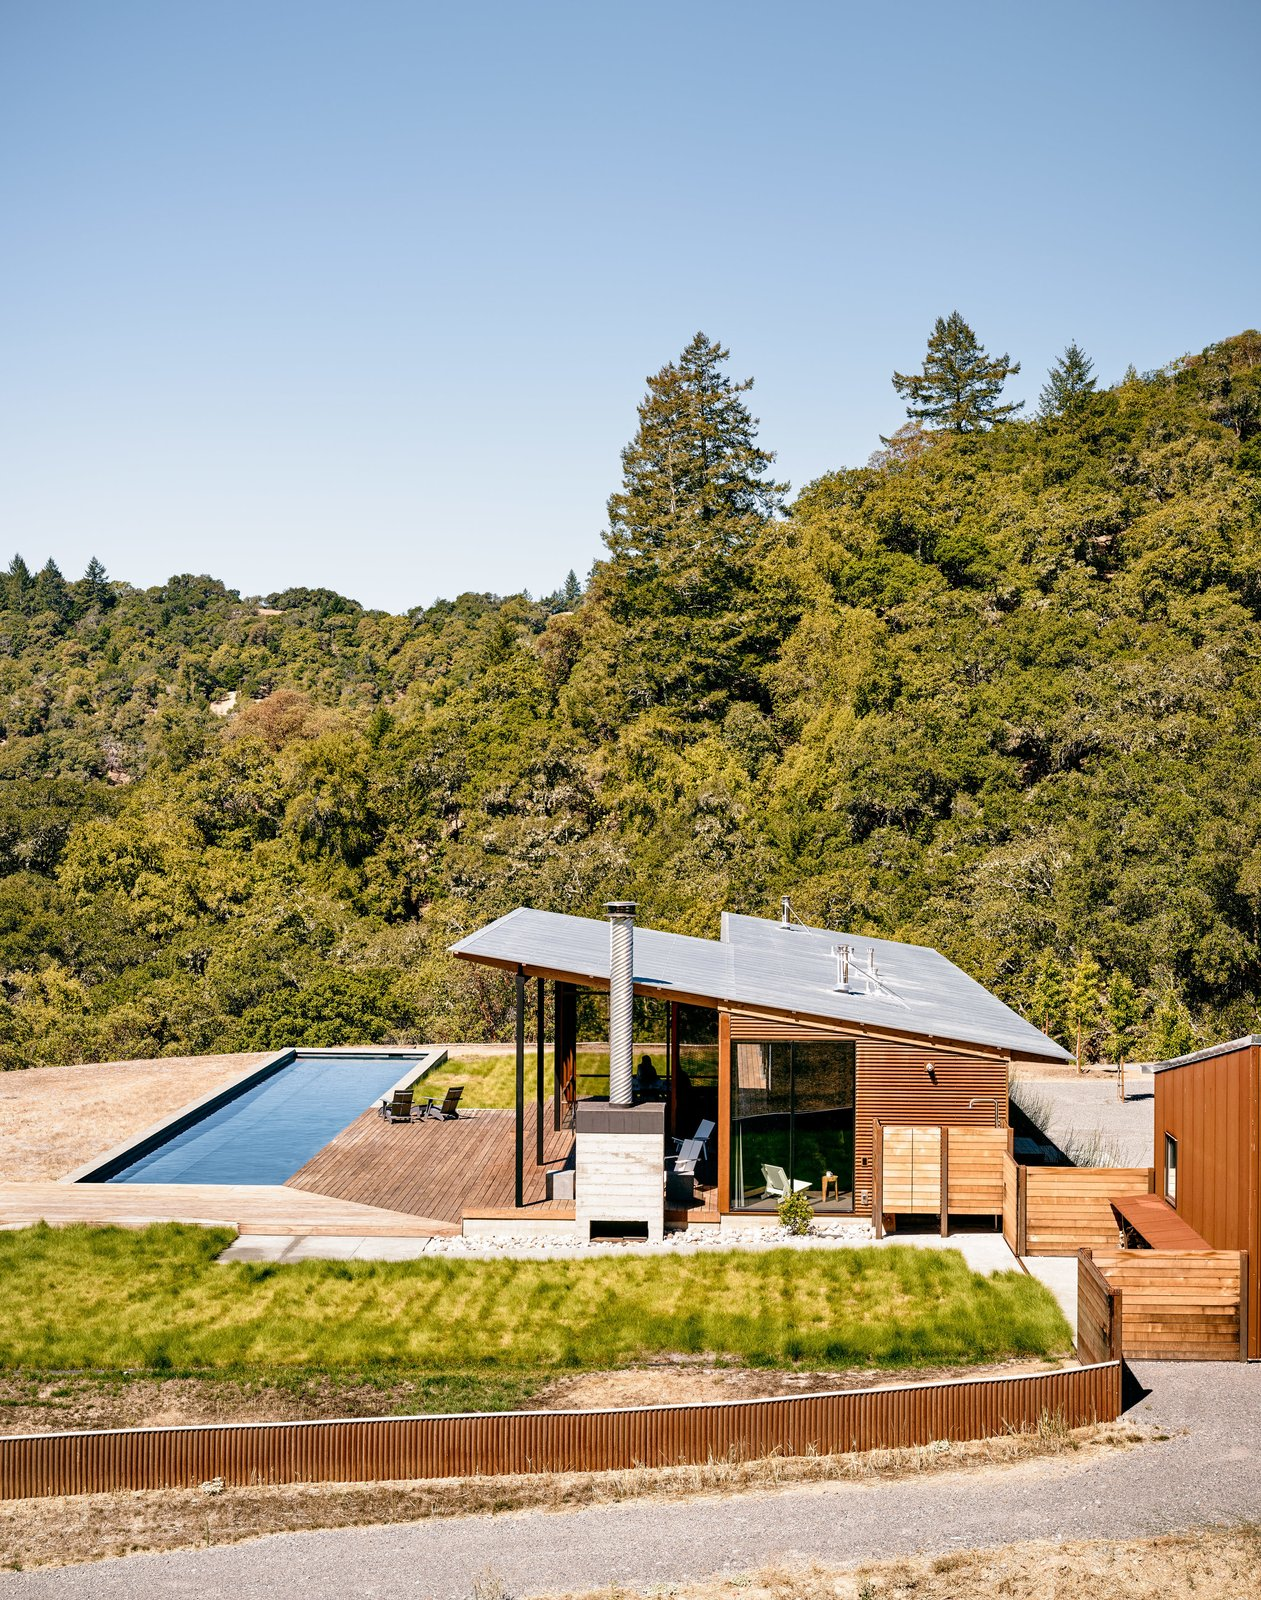 A tradition of weekend hiking trips served as the premise for Jeff and Millie Baird's off-the-grid retreat in California's Sonoma County. Affectionately named Camp Baird, the home is located on a 165-acre parcel near a campsite the couple and their two young daughters had visited for years. Architect Malcolm Davis worked with contractors Fairweather & Associates on the new build; landscape architect Cary Bush of Merge Studio incorporated drought-resistant nativeplantings into the property. Tagged: Large Pools, Tubs, Shower, Wood Patio, Porch, Deck, Large Patio, Porch, Deck, Swimming Pools, Tubs, Shower, Grass, Metal Fences, Wall, Exterior, House, Metal Roof Material, Metal Siding Material, Wood Siding Material, and Cabin Building Type.  Off the grid by Michela O'Connor Abrams from Goodbye Grid and Cushy Beds, Hello Pool in the Wilderness